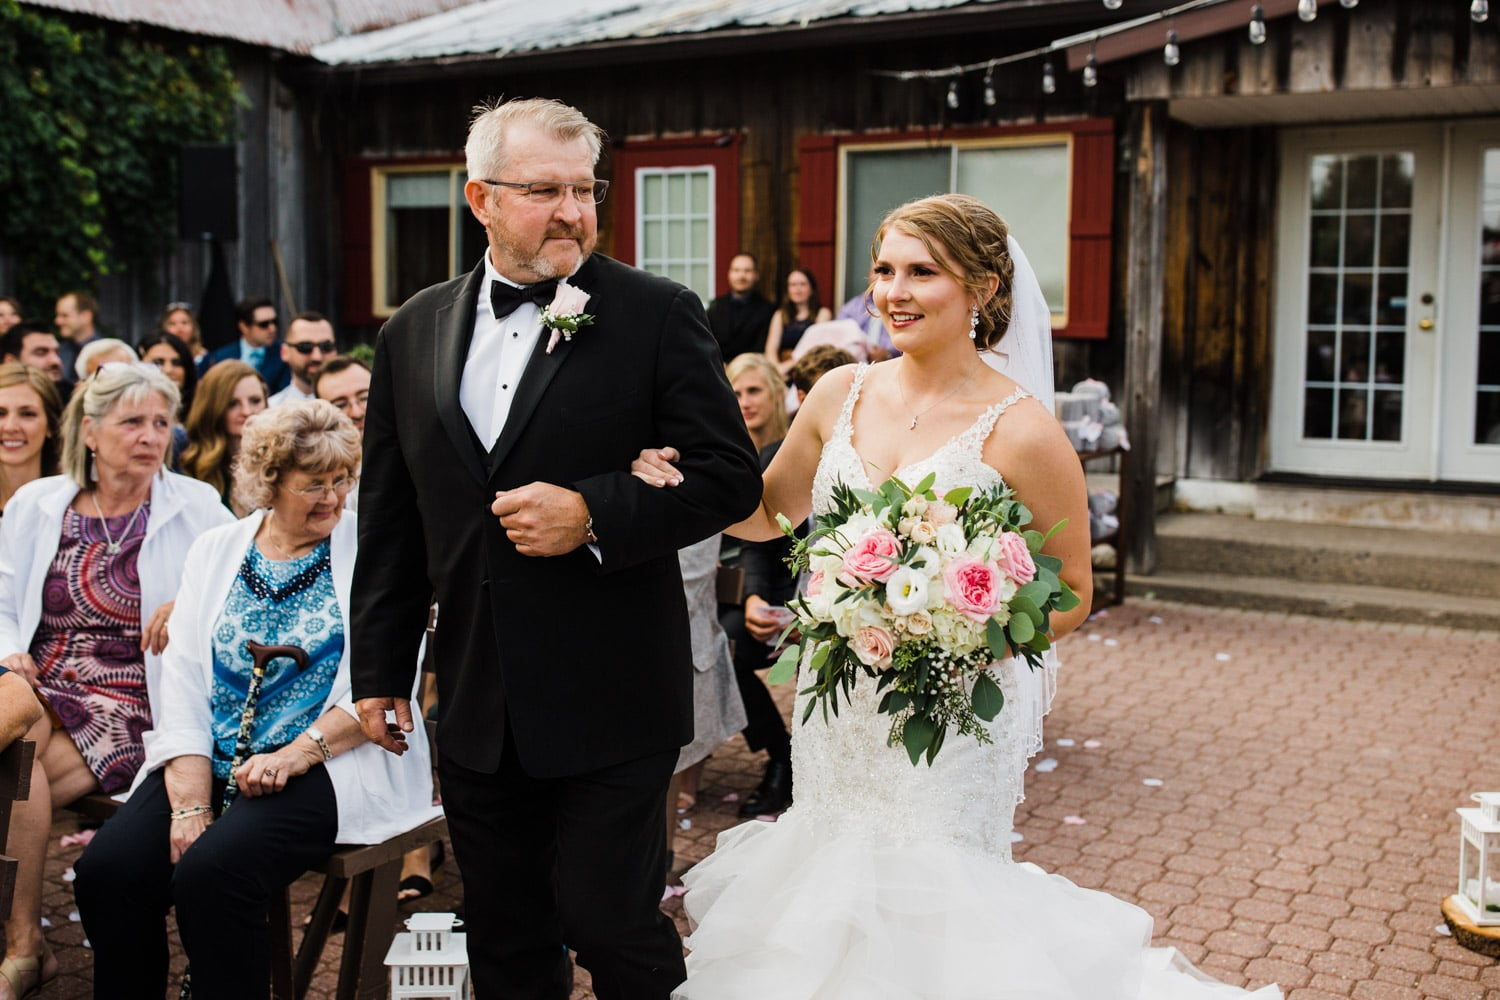 bride walks down the aisle with her father - strathmere wedding